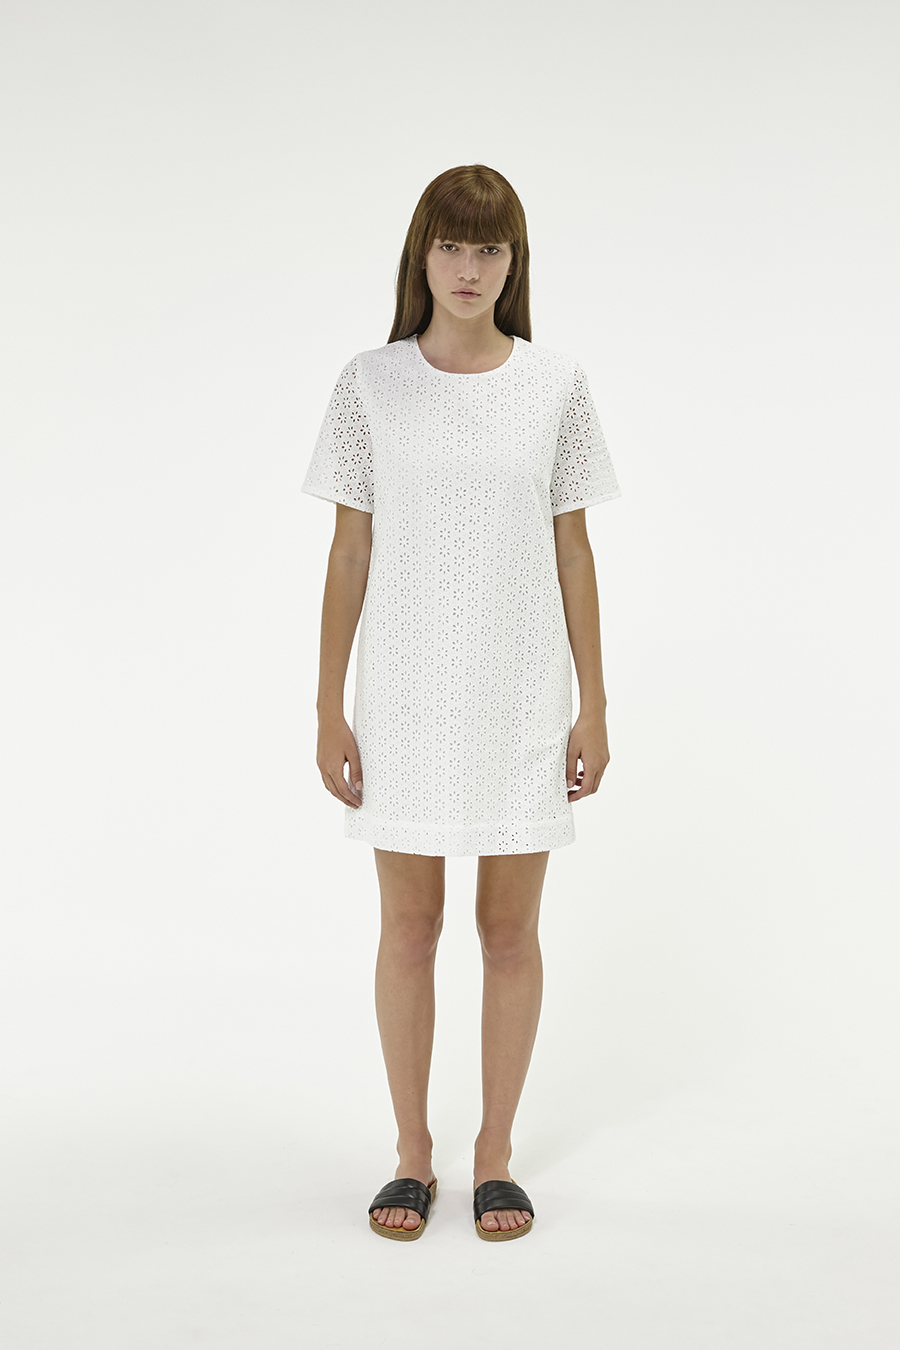 Huffer_Q3-16_W-Hope-Shell-Dress_White-01